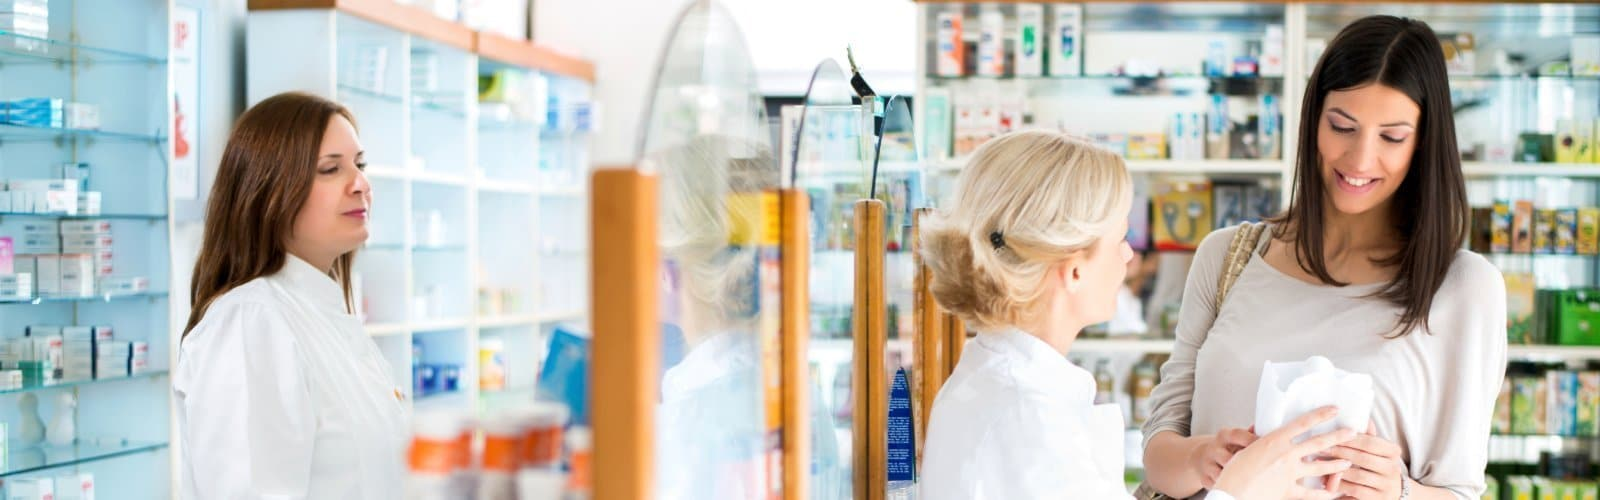 pharmacy staffing, pharmacist staffing, PA pharmacies, PA pharmacy staffing, PA pharmacist staffing, PA pharmacists, Pennsylvania pharmacies, Pennsylvania pharmacy staffing, Pennsylvania pharmacists, Pennsylvania pharmacist staffing, pharmacist recruiting